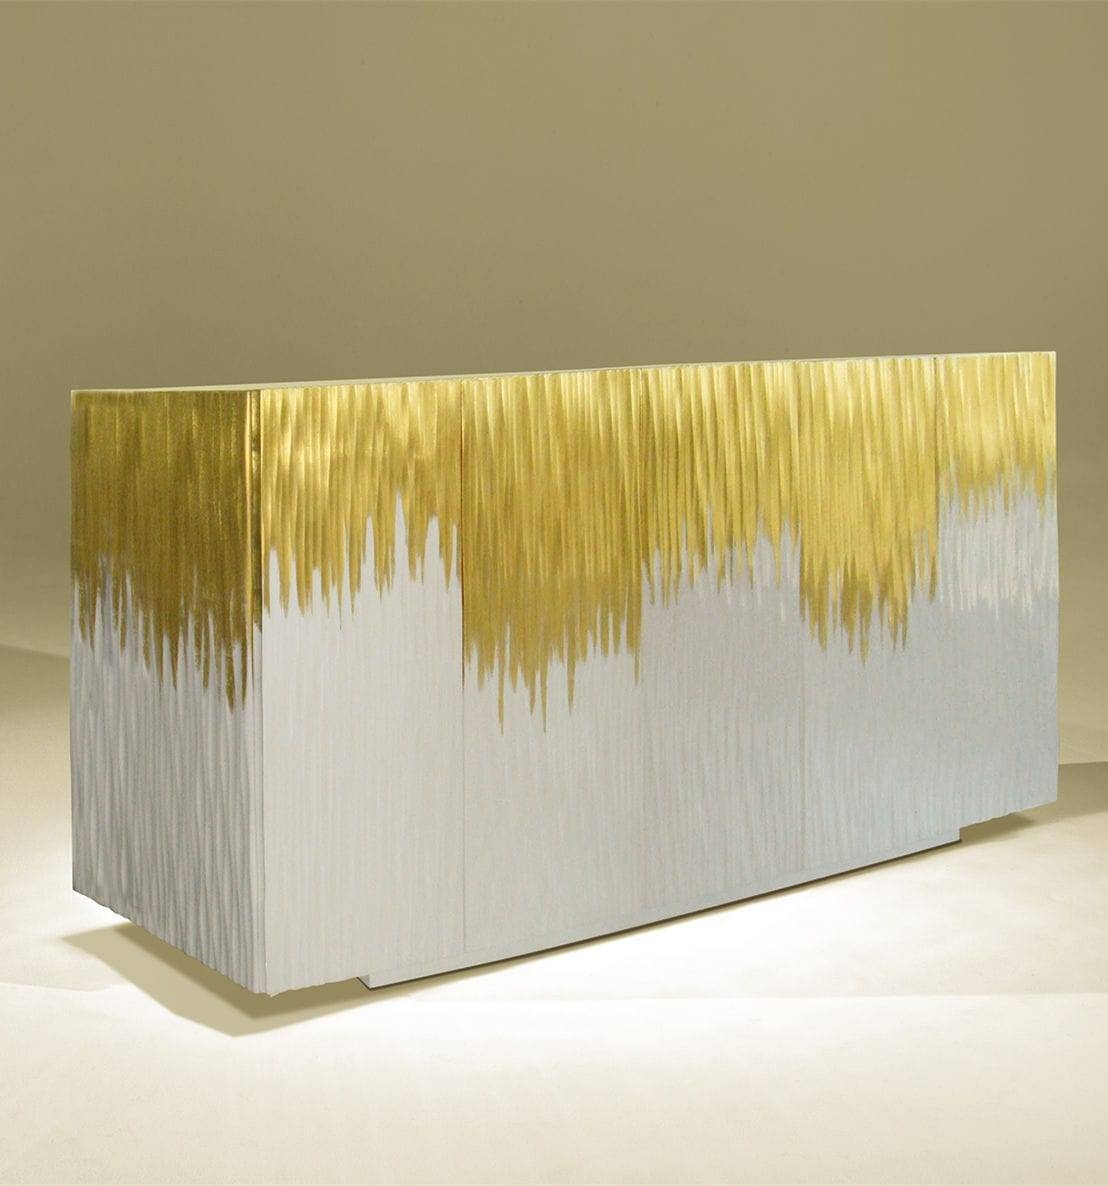 Contemporary Sideboard / Lacquered Wood / White / Golden – Moon Regarding Gold Sideboards (View 11 of 15)